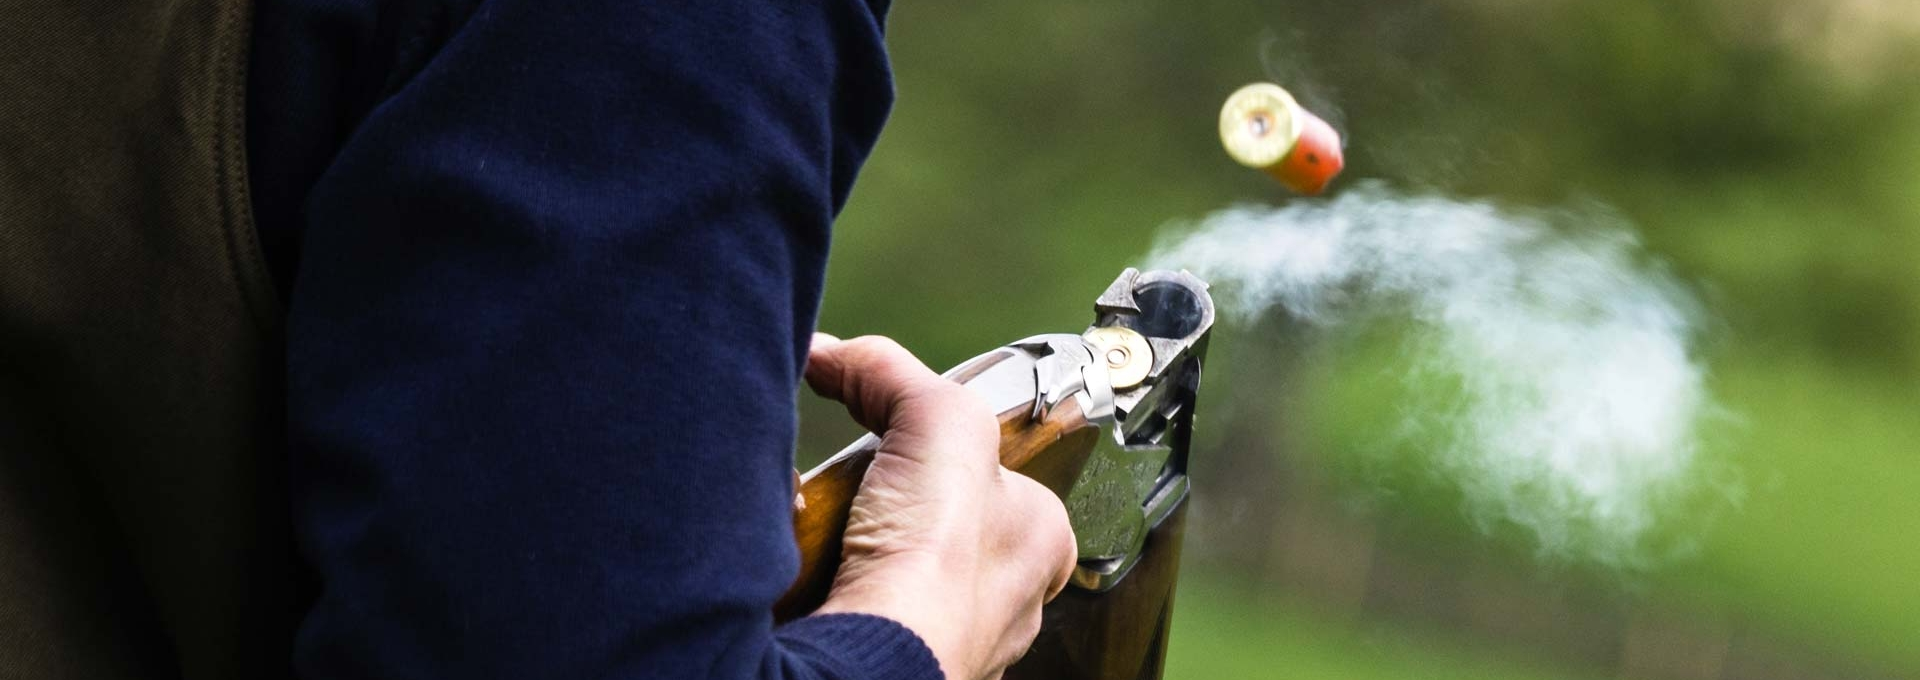 Quality Products and Expertise for the Sporting Gun